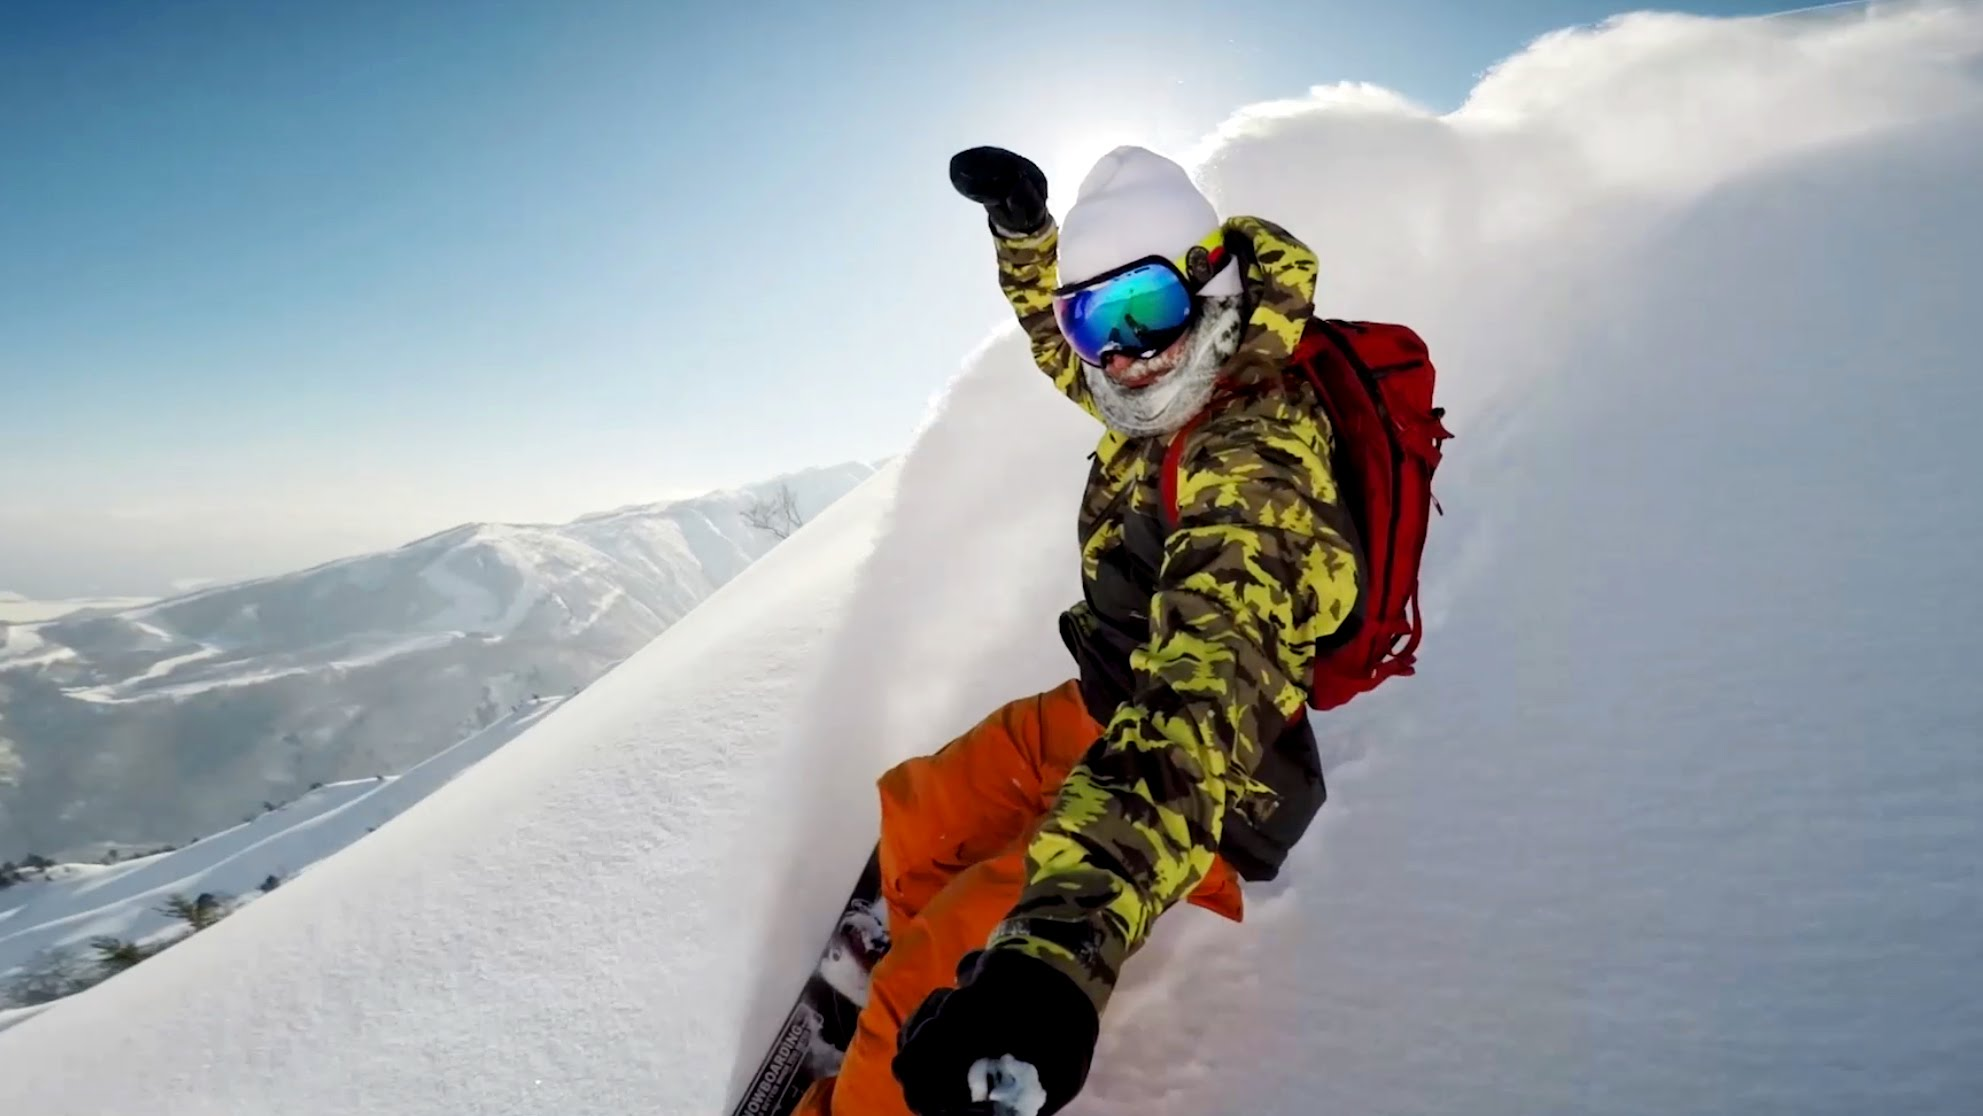 GoPro - Best of 2015 - The Year in Review